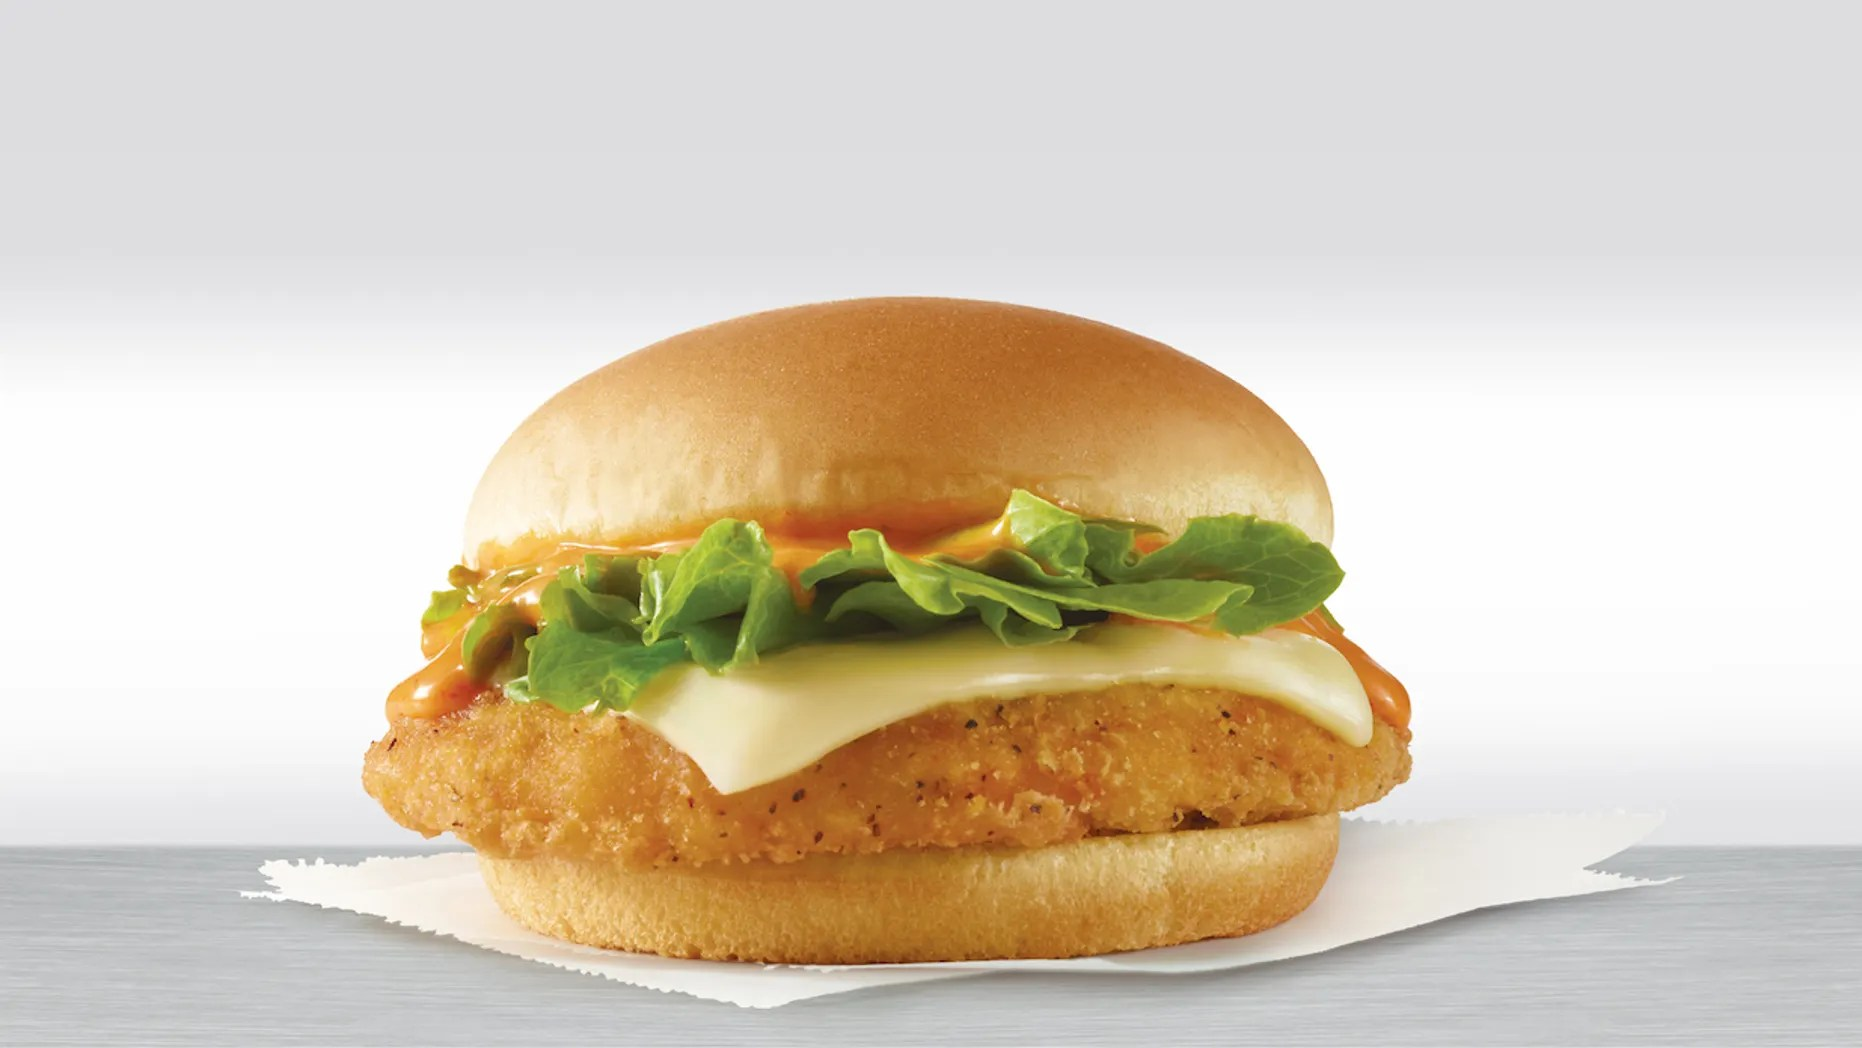 Admirable New Sandwich Will Set You Back Just A Buck Starting This New Buffalo Ranch Crispy Ken Sandwich Is Only Fox News Wendy S Ken Tenders Nutrition Information Wendy S Ken Tenders Review nice food Wendys Chicken Tenders